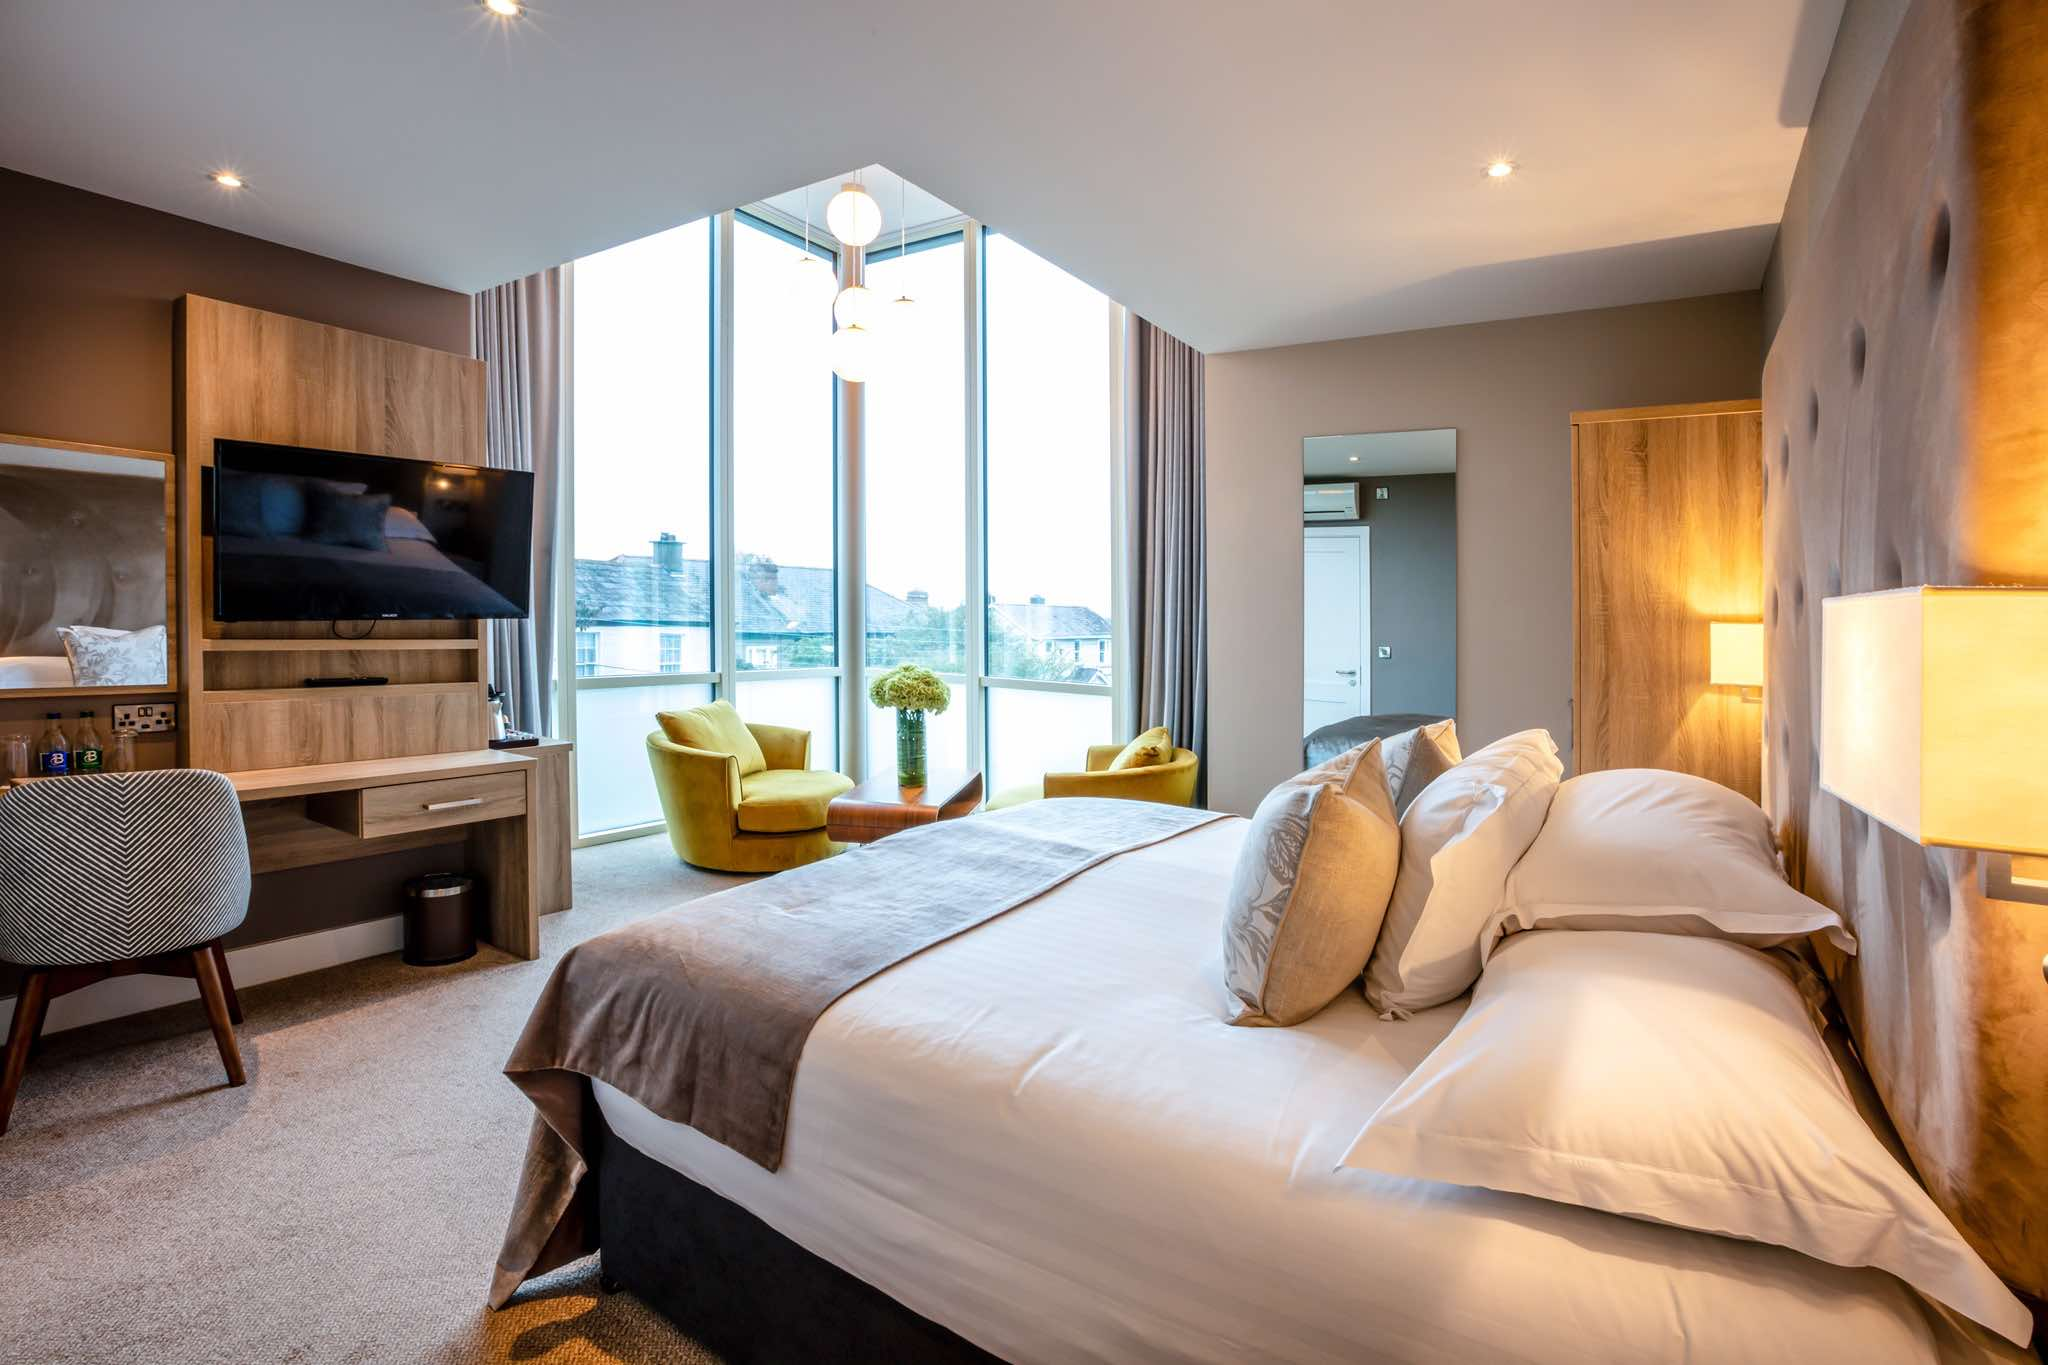 Gleesons Hotel room with view over the harbour